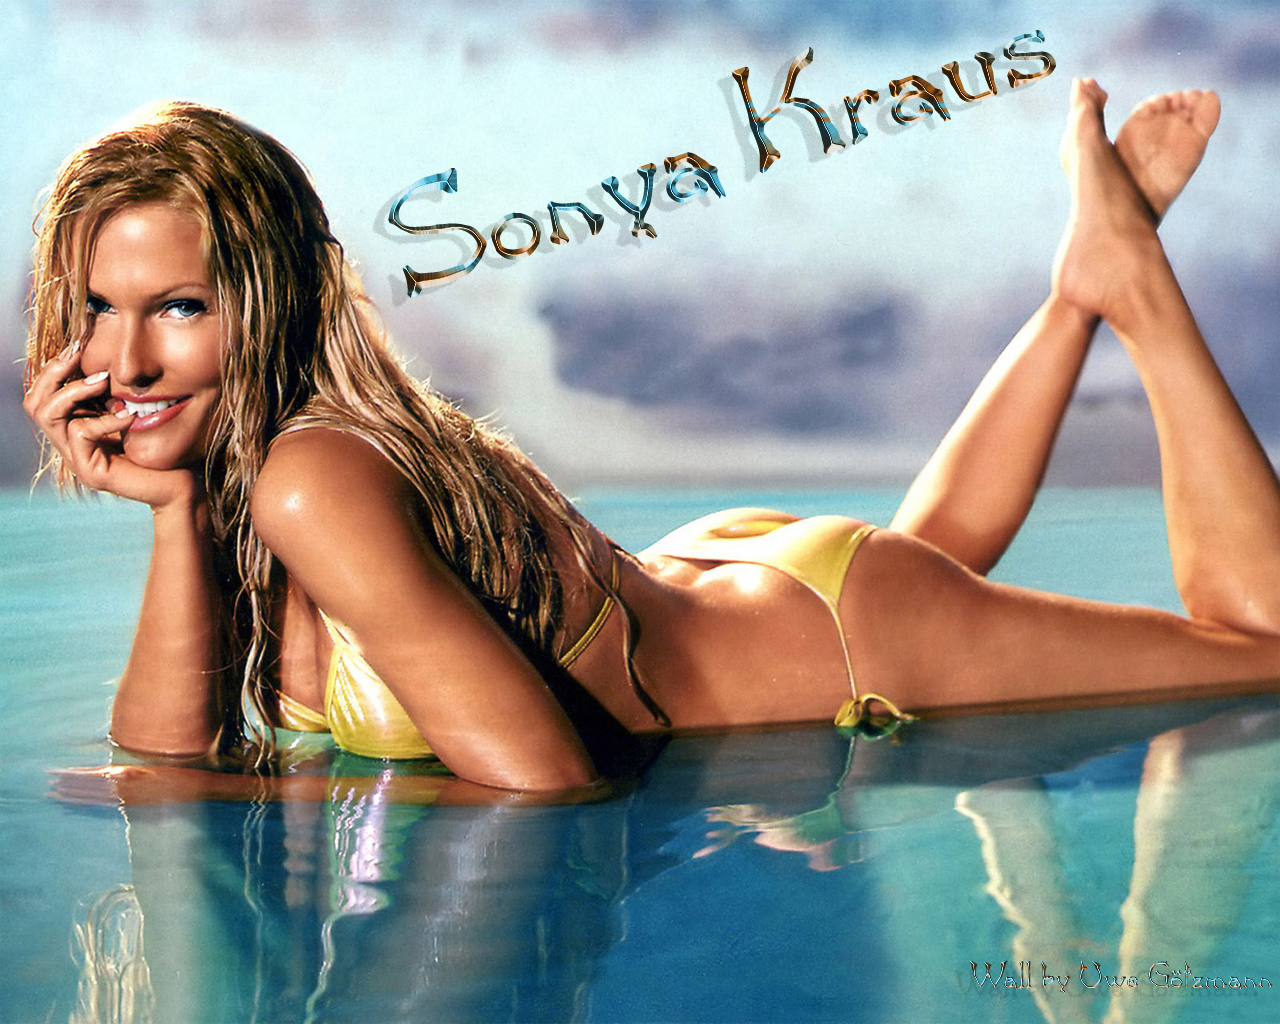 http://www.rexwallpapers.com/images/wallpapers/celebs/sonya-kraus/sonya_kraus_3.jpg